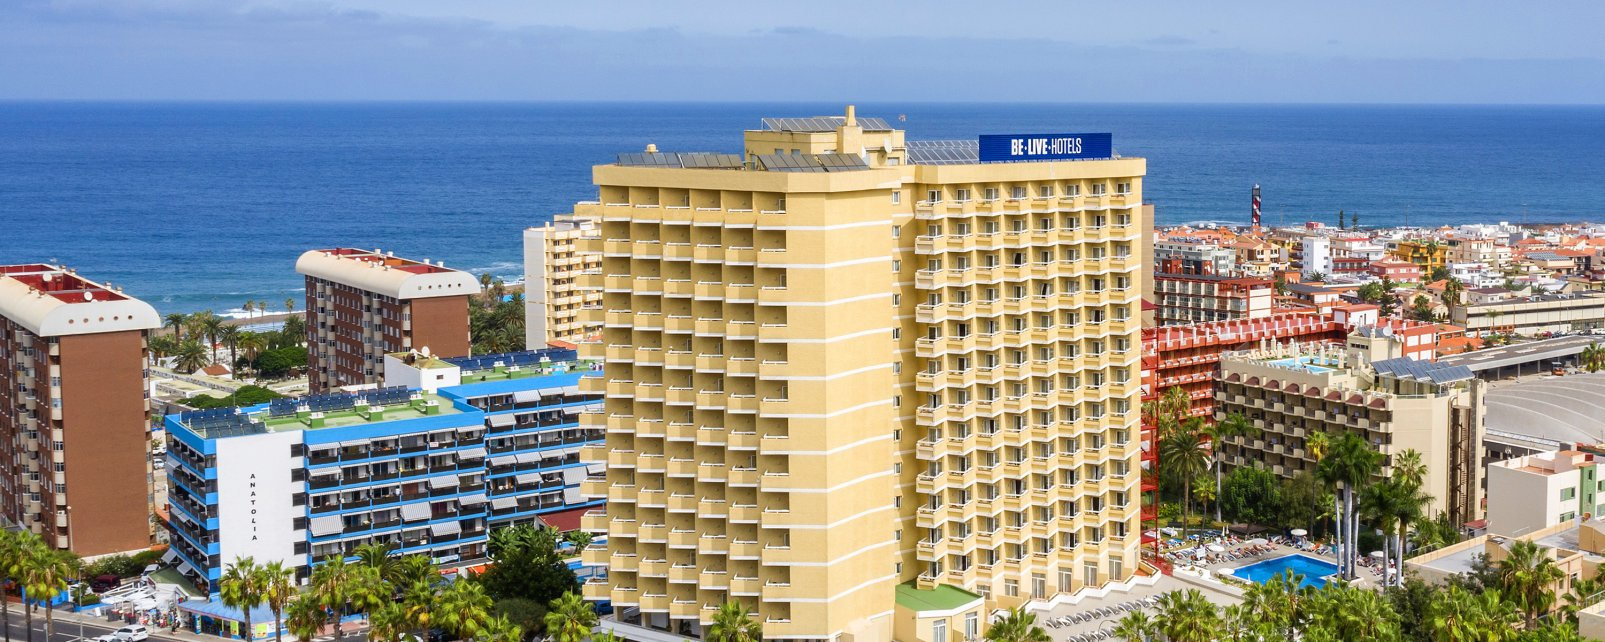 Hôtel Be Live Adults Only Tenerife